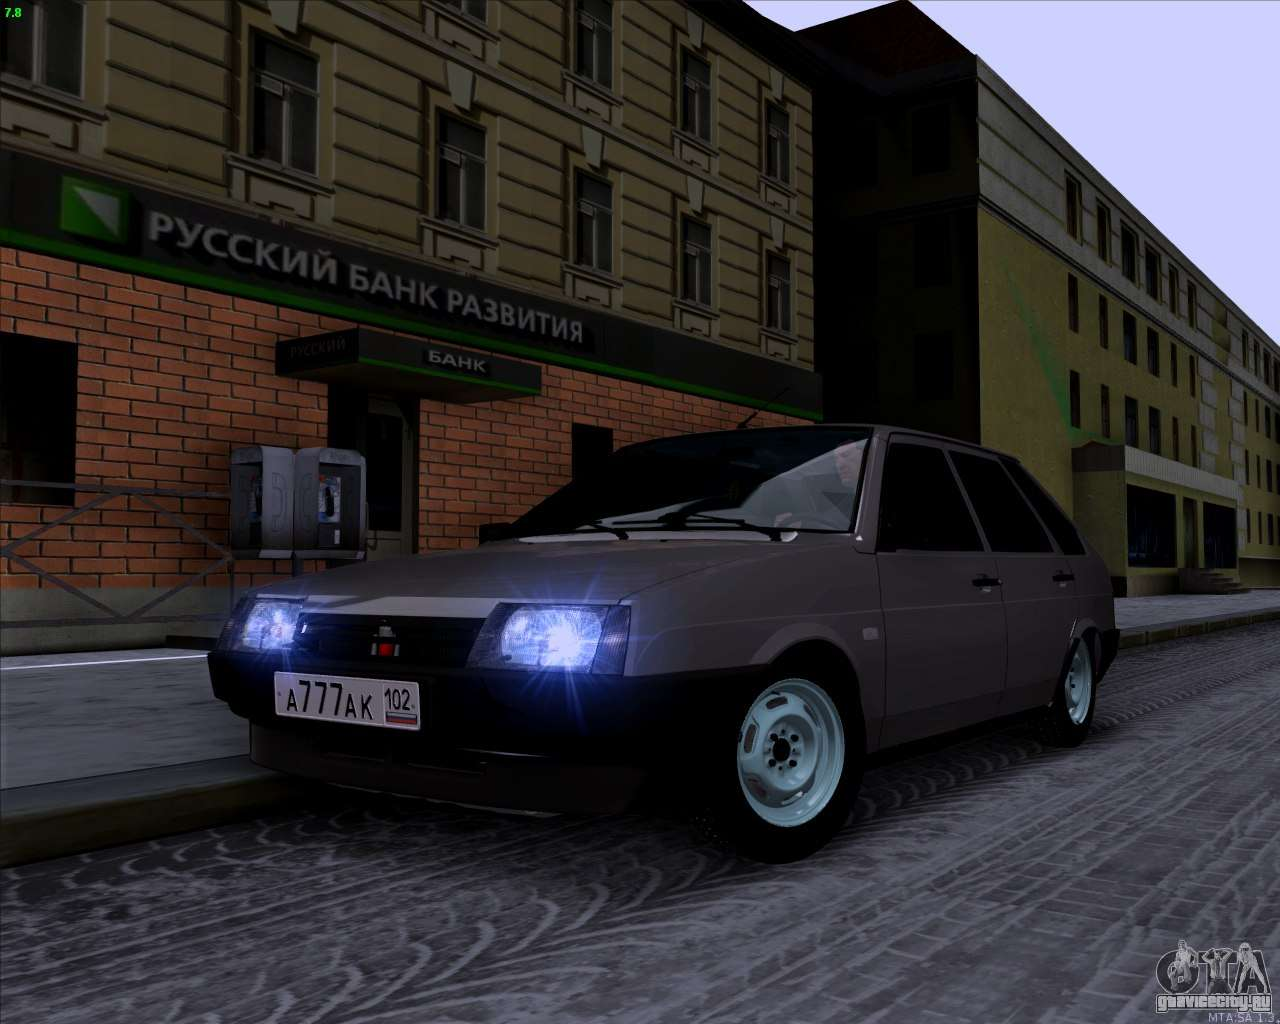 Dowland gta san andreas vip mod v3 torent tpb search, download with torrent files free full cracked downloads